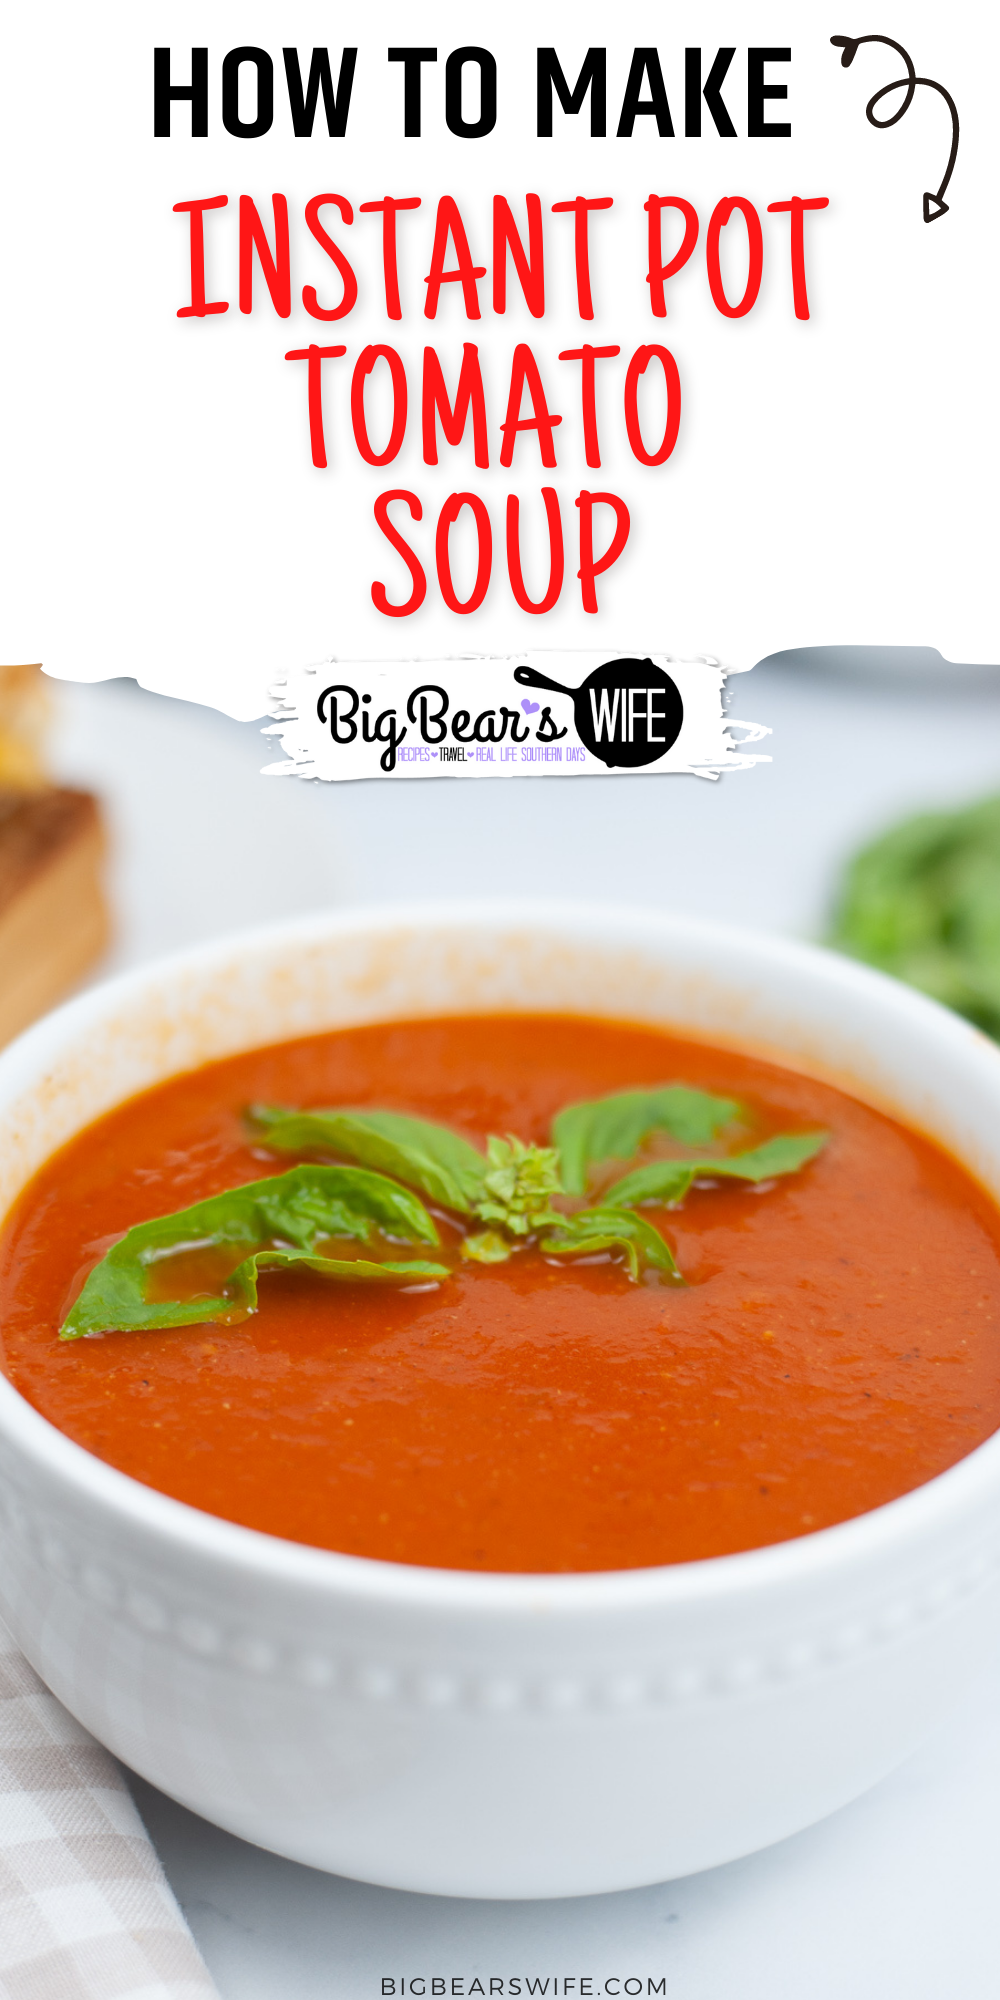 This Instant Pot Tomato Soup recipe is a great soup to make in the Instant Pot and only takes about 45 minutes to come together for a great lunch or dinner! Perfect to serve with grilled cheese sandwiches!  via @bigbearswife